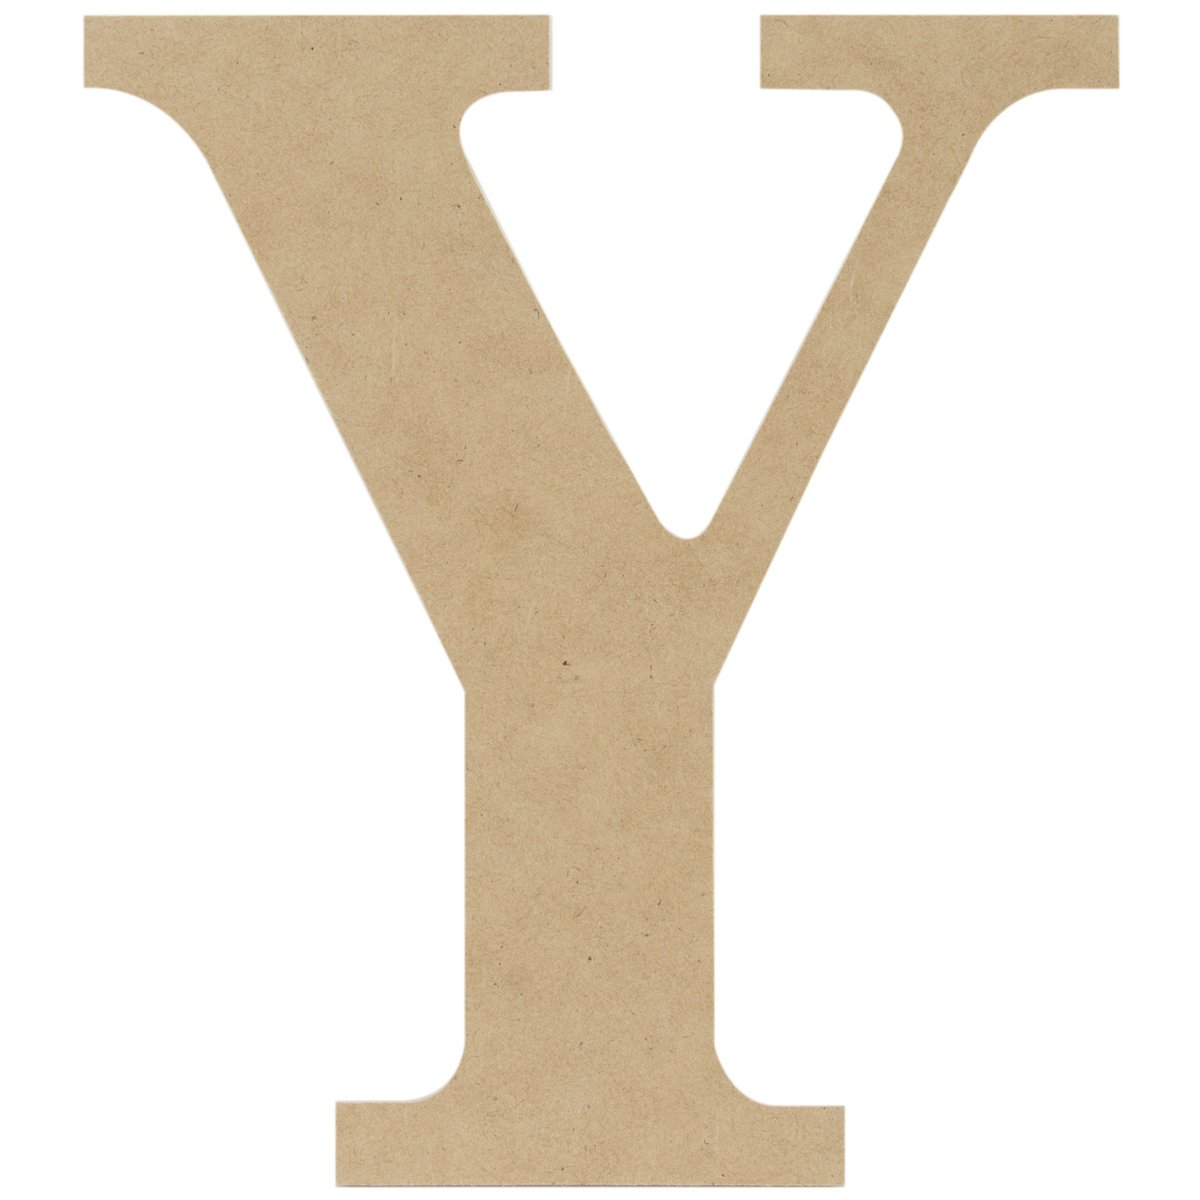 MPI MDF Classic Font Wood Letters and Numbers, 9.5-Inch, Letter Y MDF9-L425